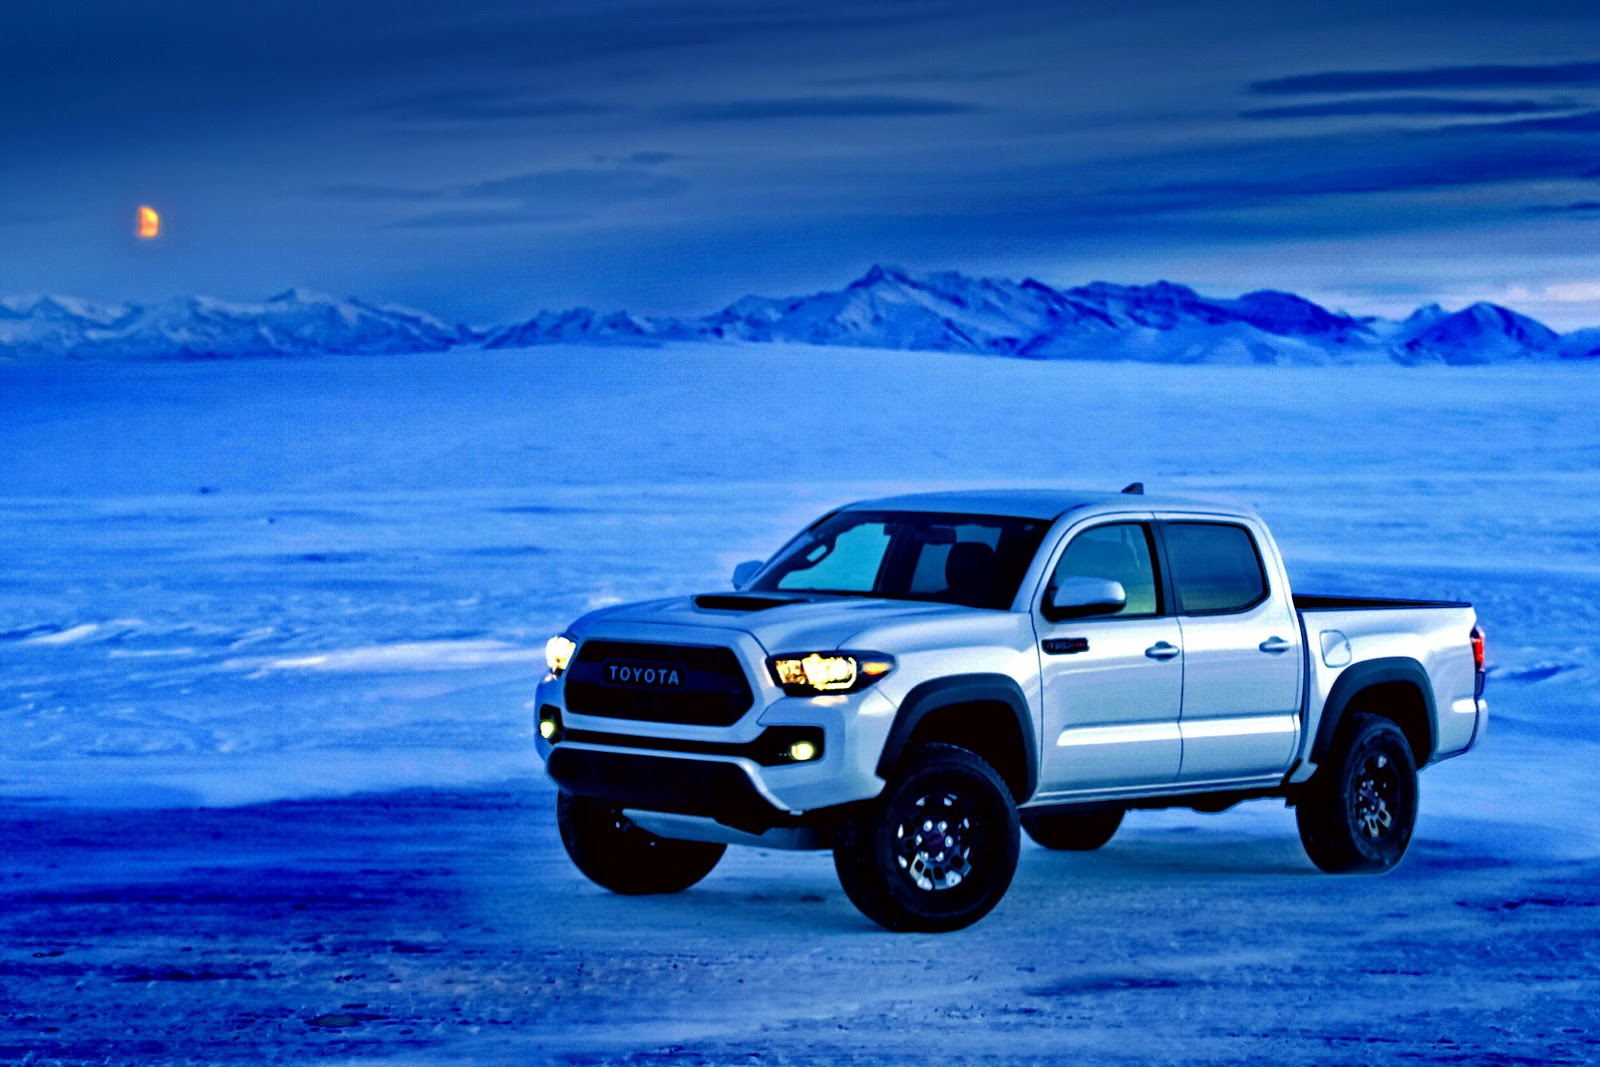 tacoma trd toyota road ready pickup starts adventure autoevolution racing version factory development s1 rear